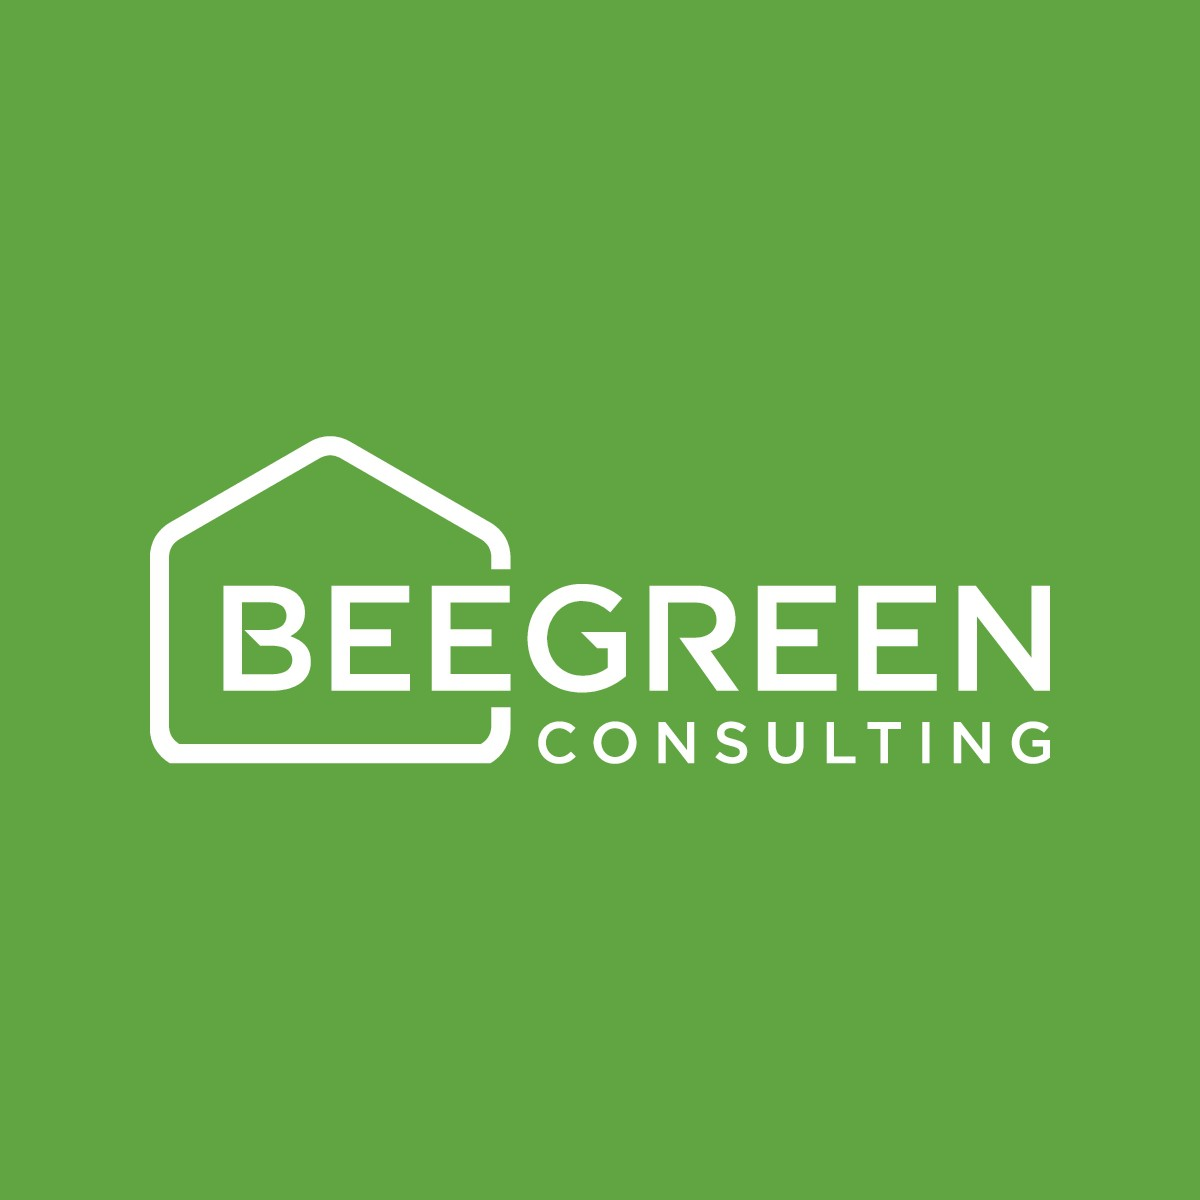 BeeGreen Consulting